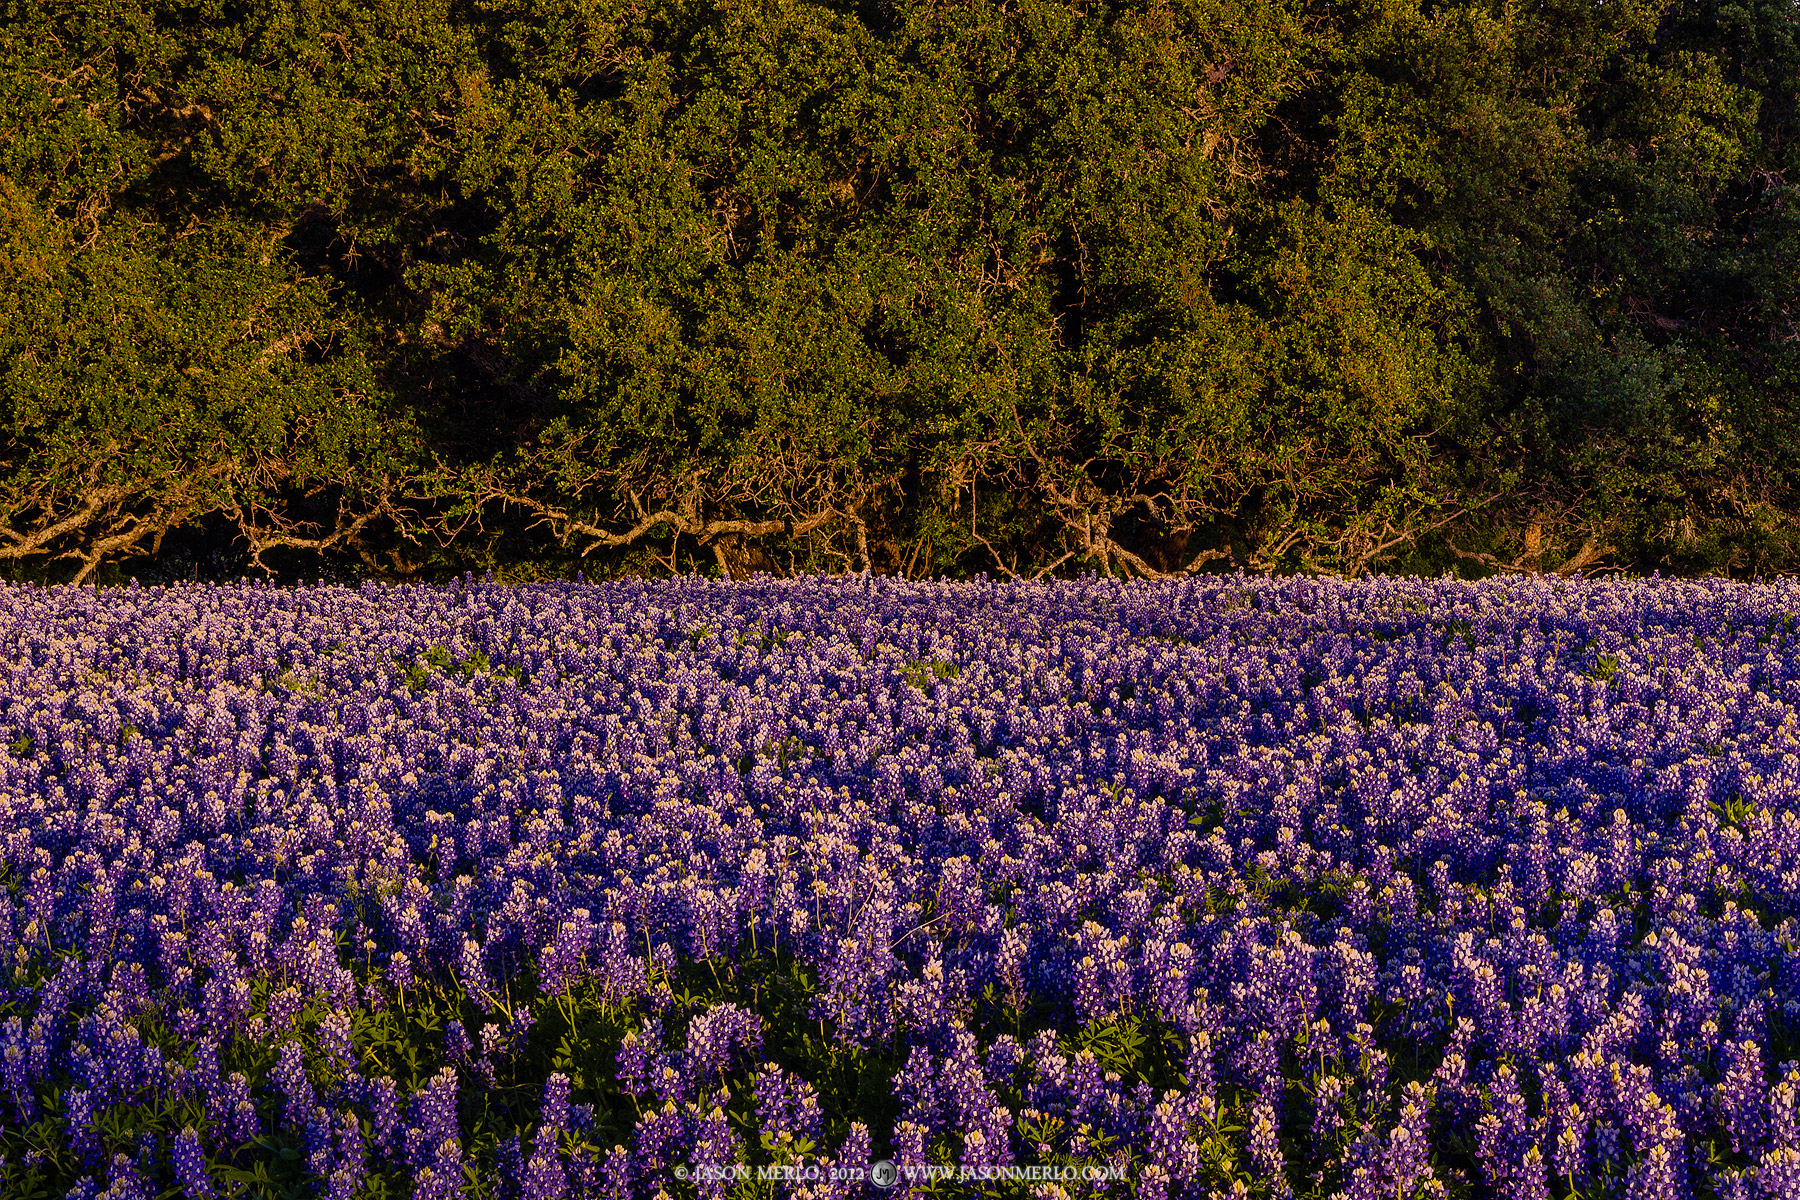 Live oak tree (Quercus virginiana) branches reach down and touch a field of Texas bluebonnets (Lupinus texensis) at sunset in...